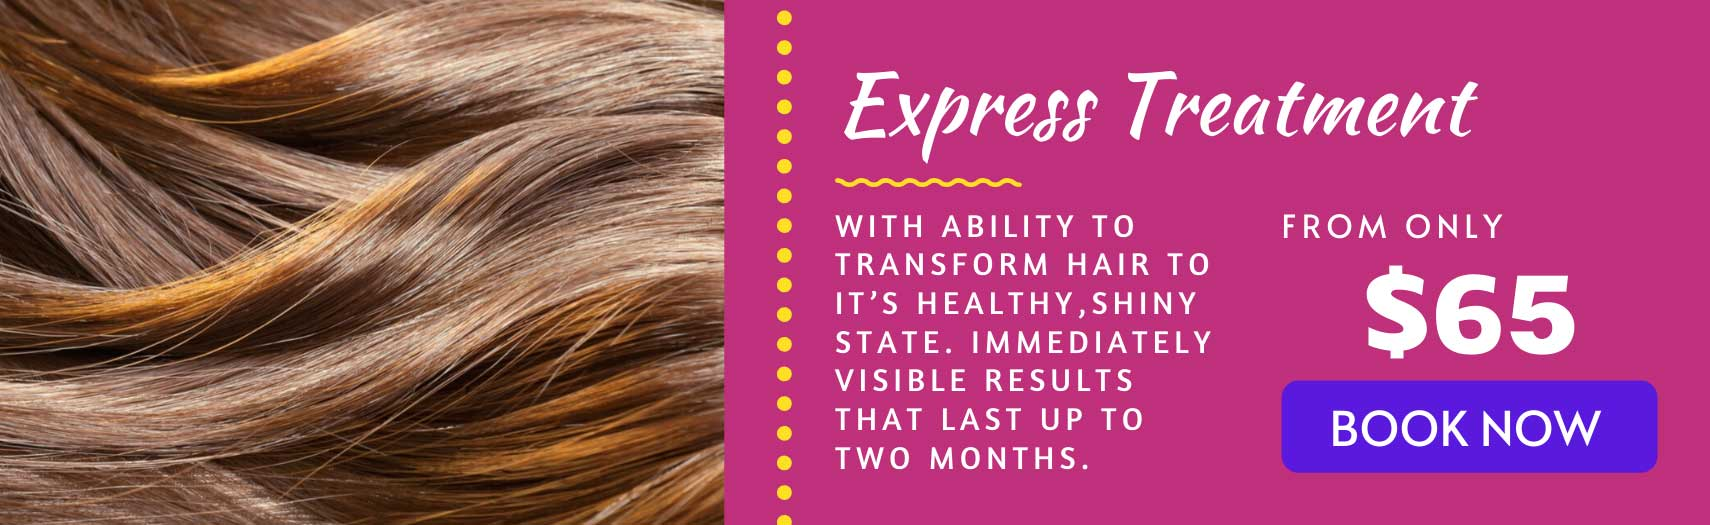 Express treatment banner